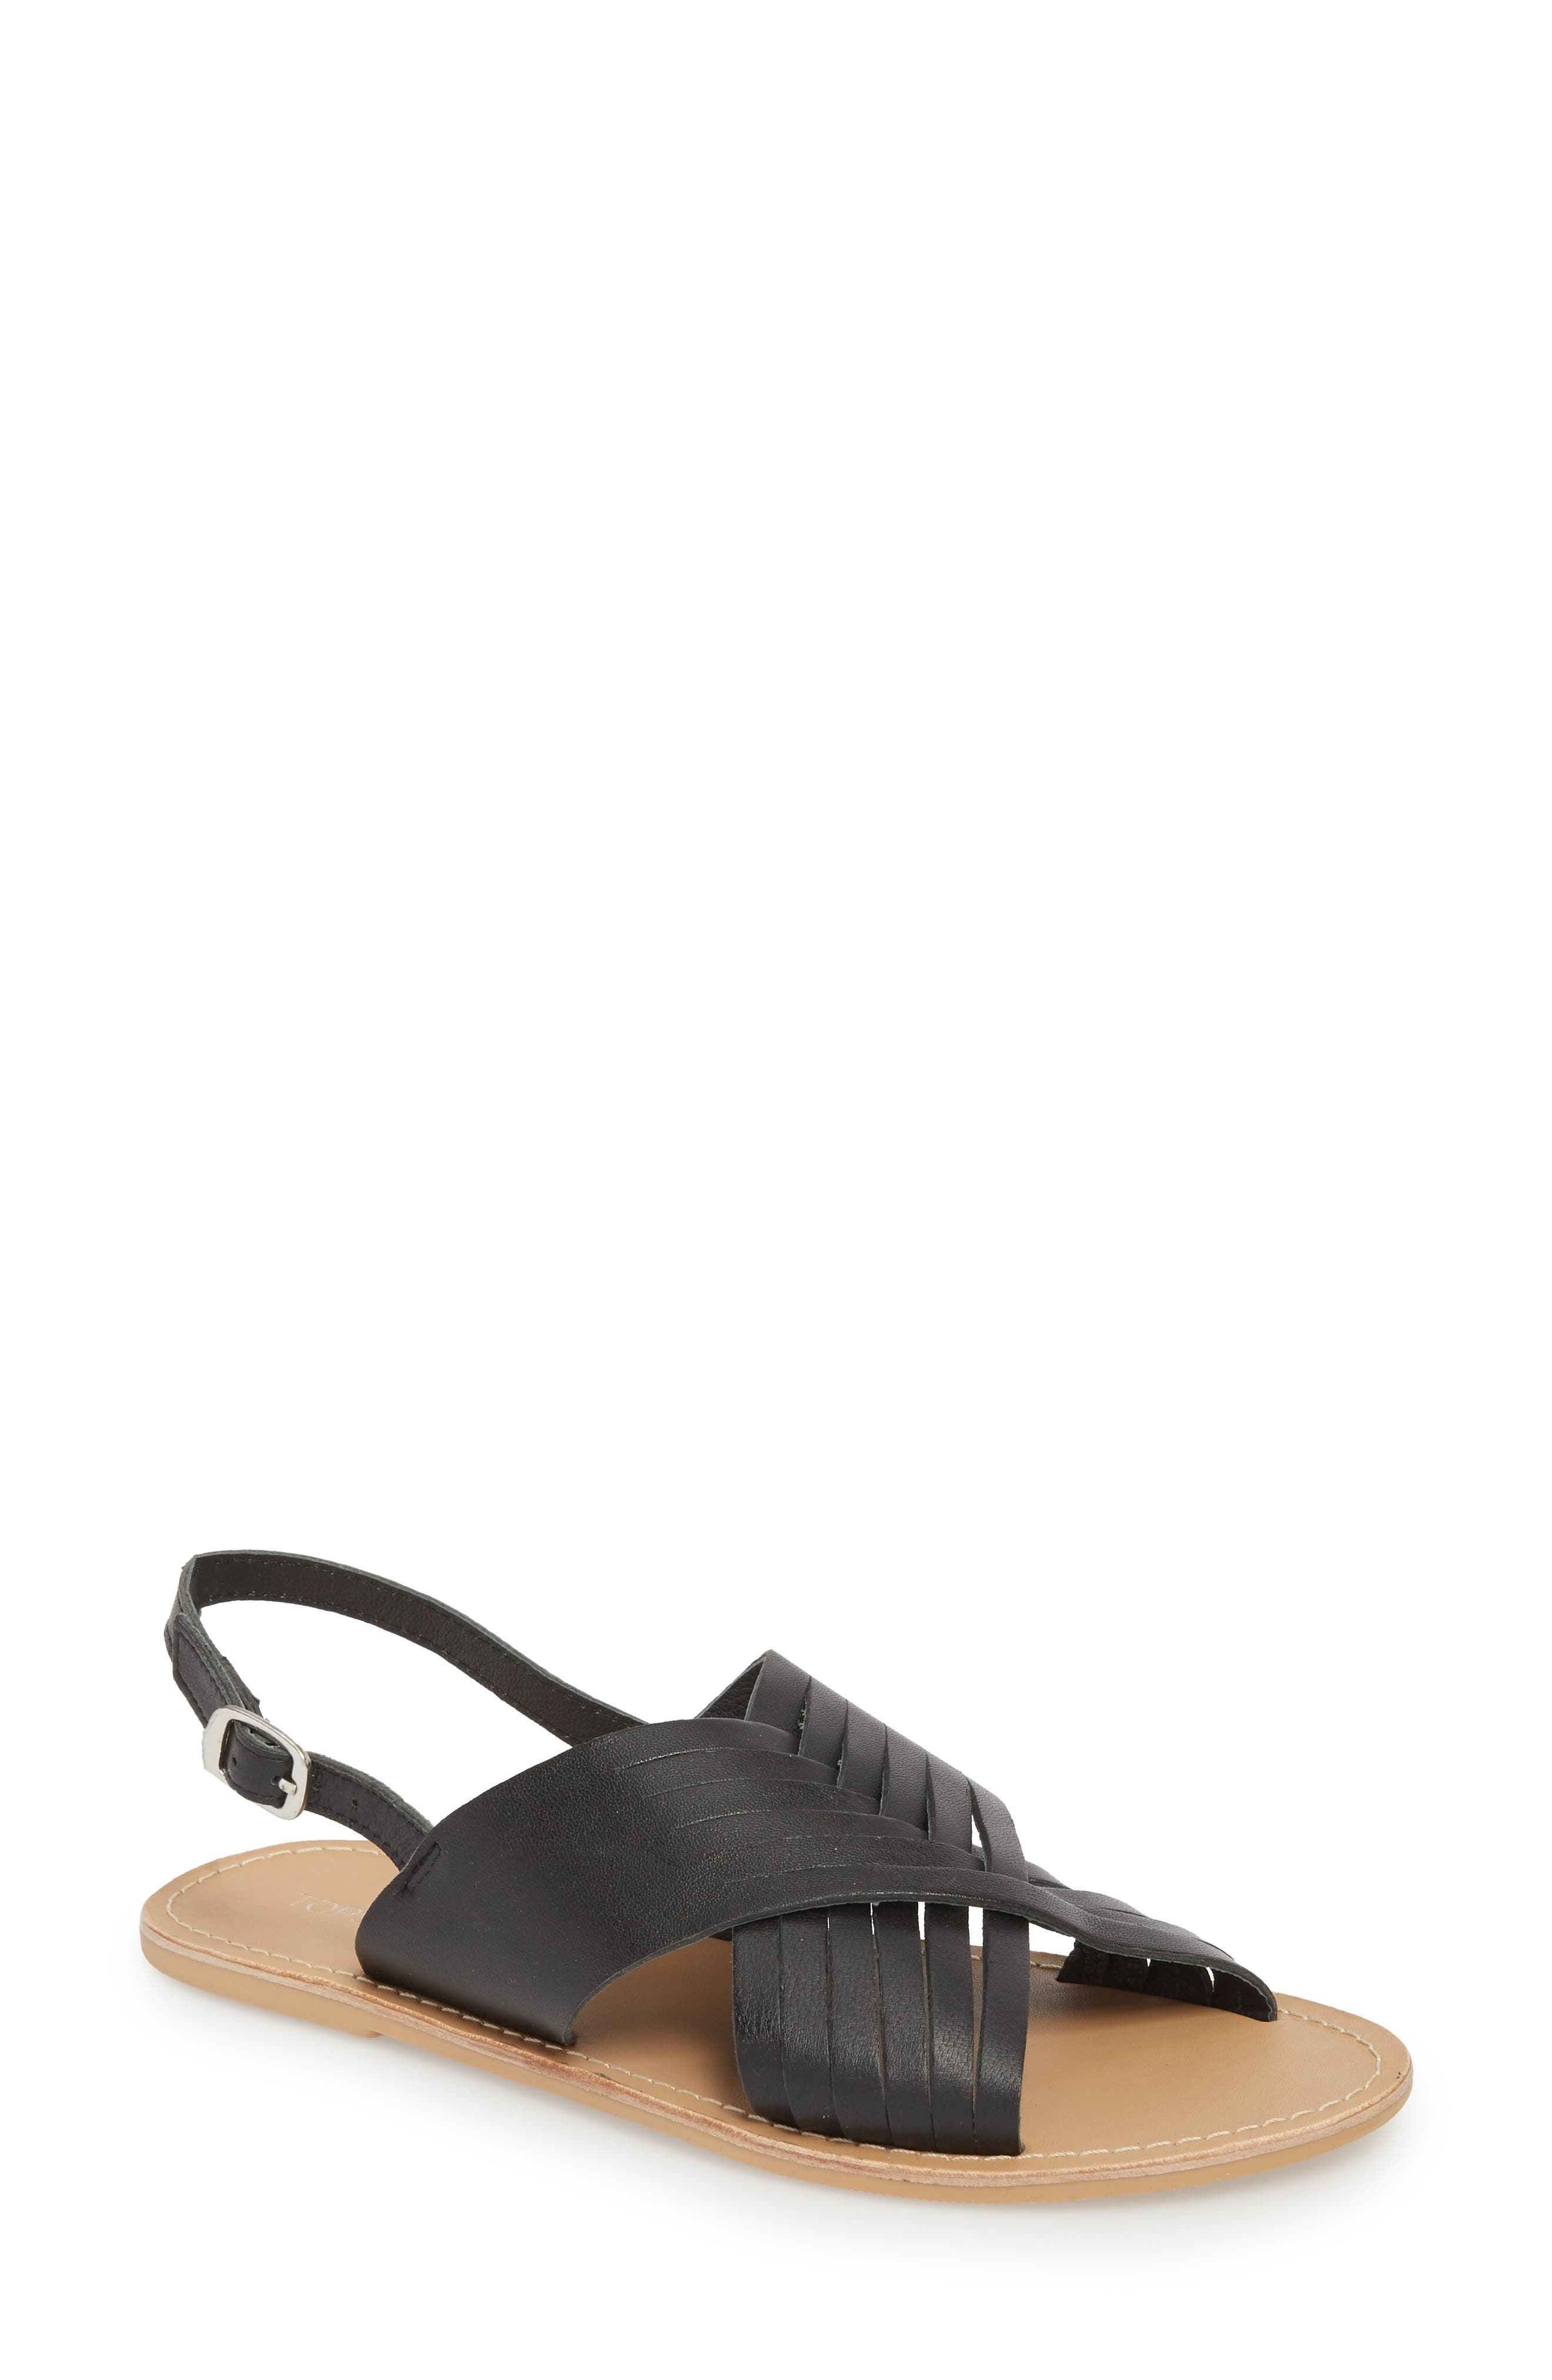 Hottie Cross Strap Flat Sandal,                         Main,                         color,